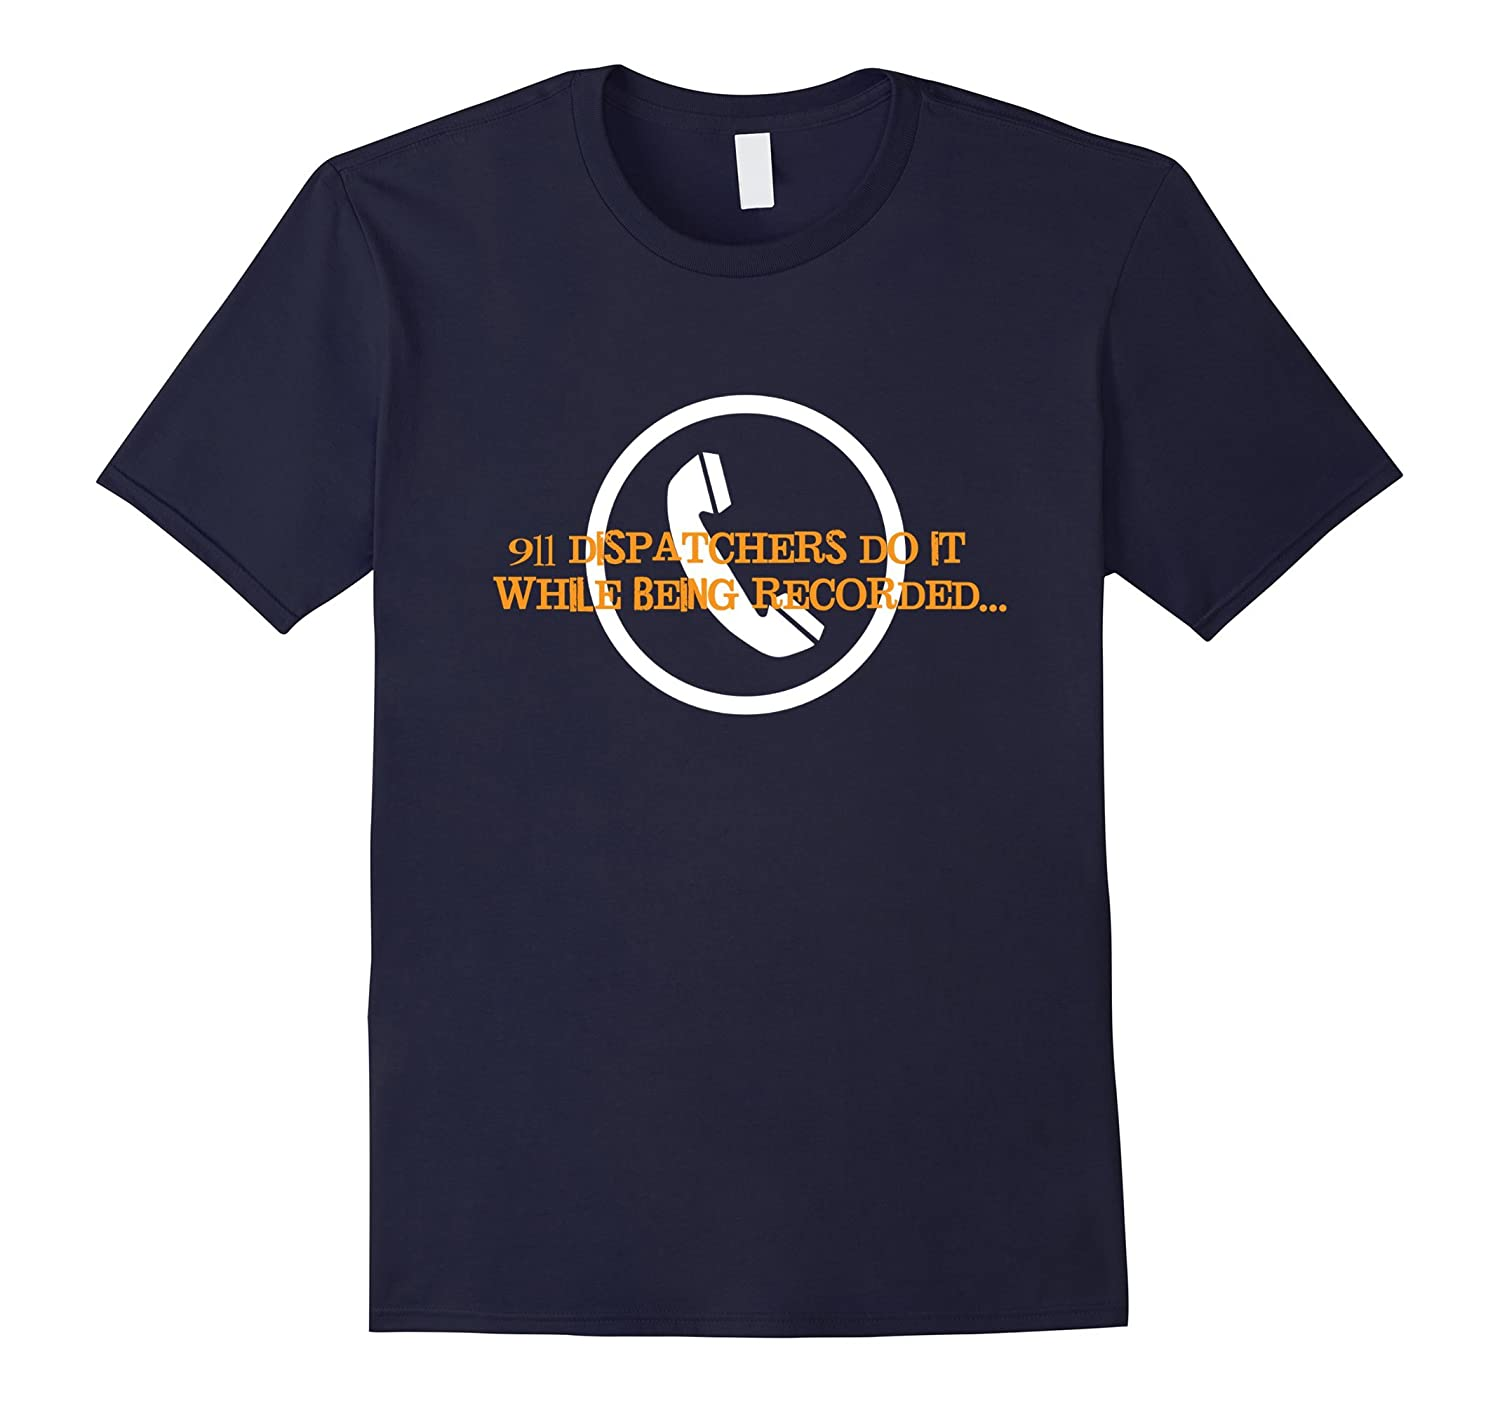 911 Dispatchers Do it While Being Recorded T-Shirt-Art